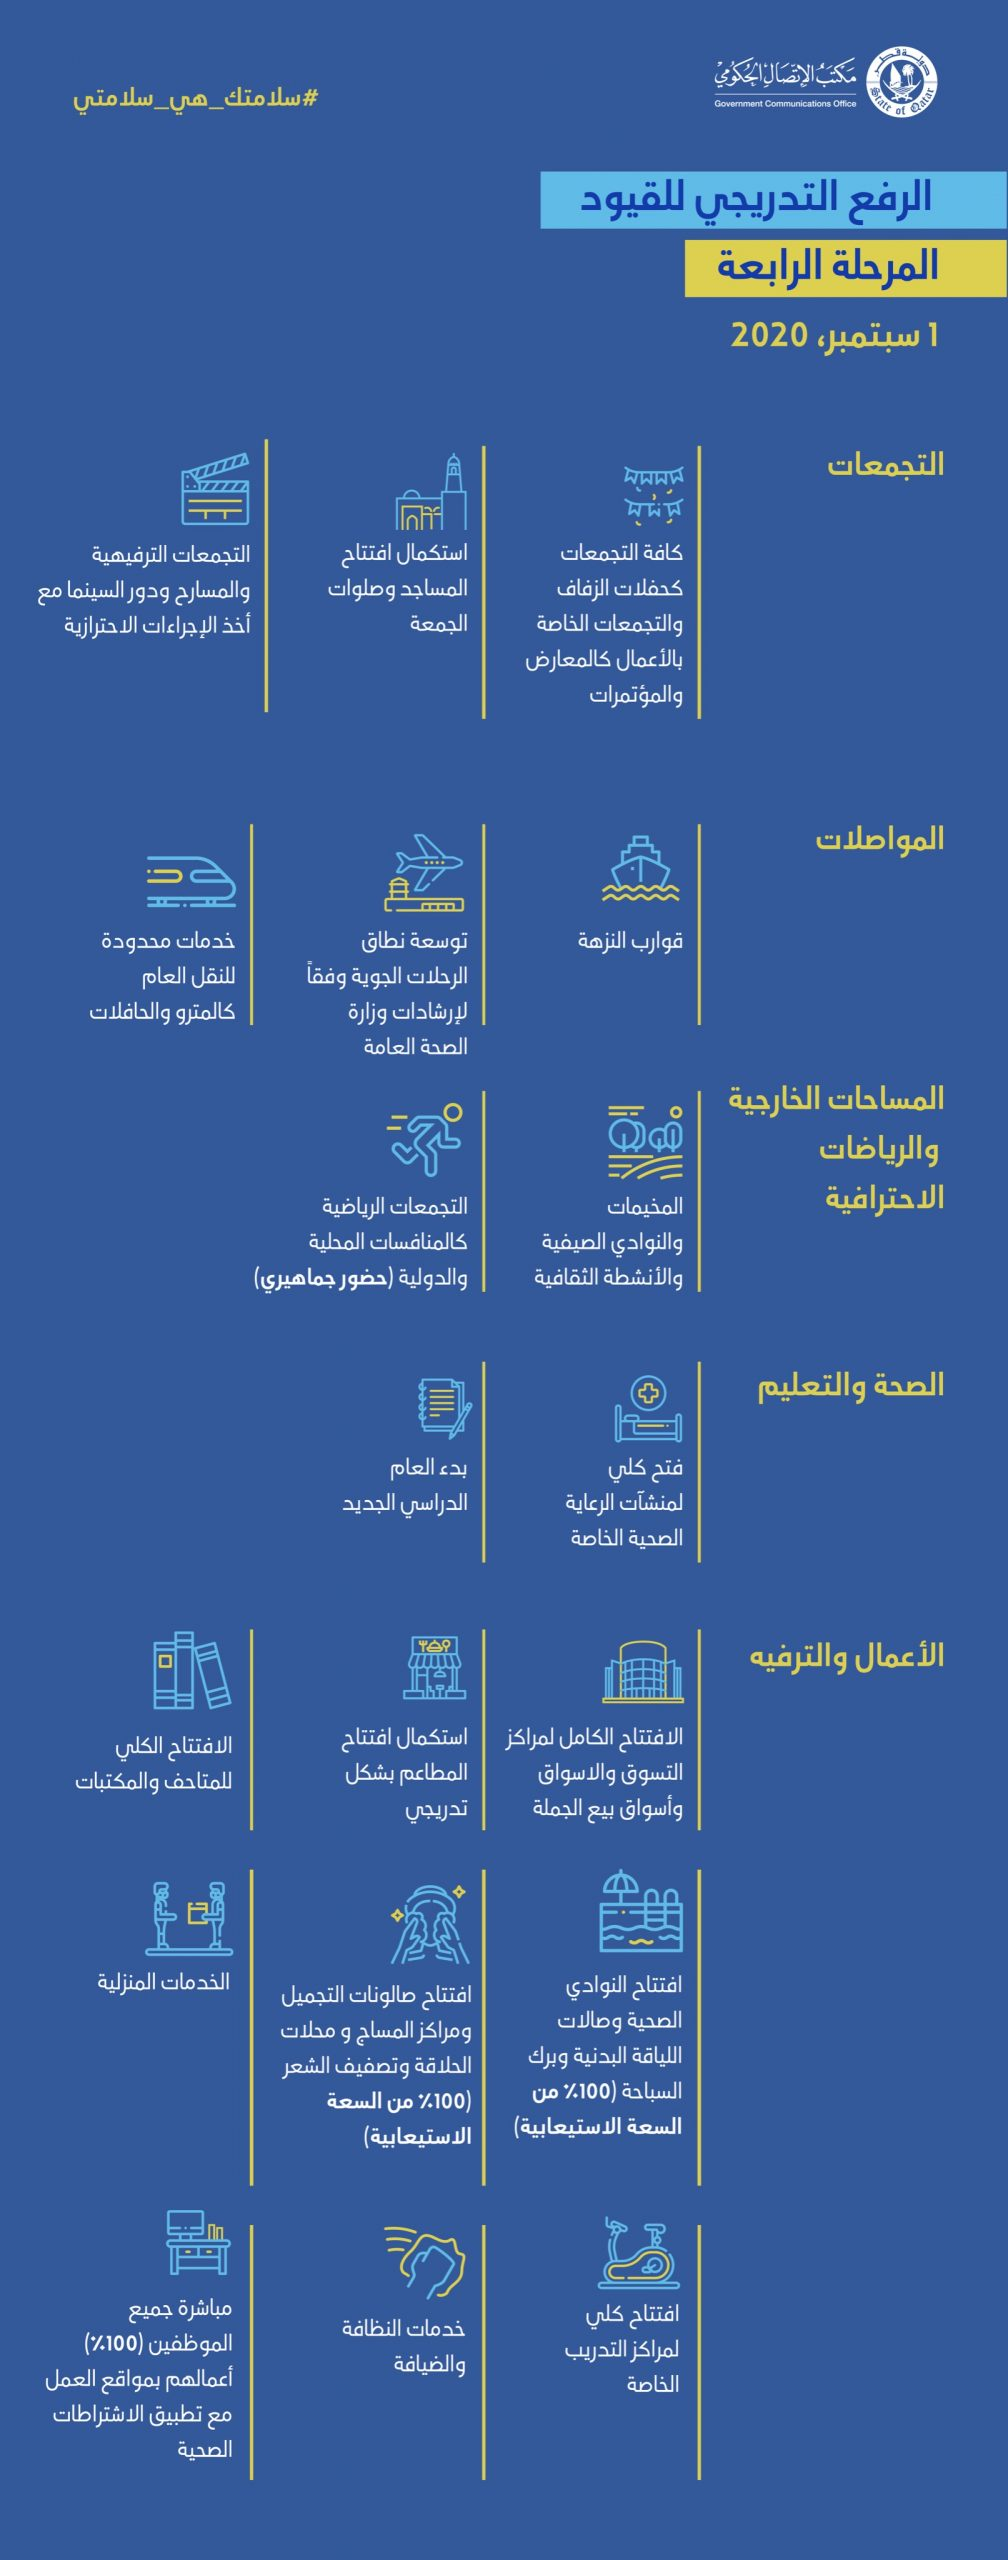 Qatar's plans to ease COVID-19 restrictions in four phases beginning 15 June